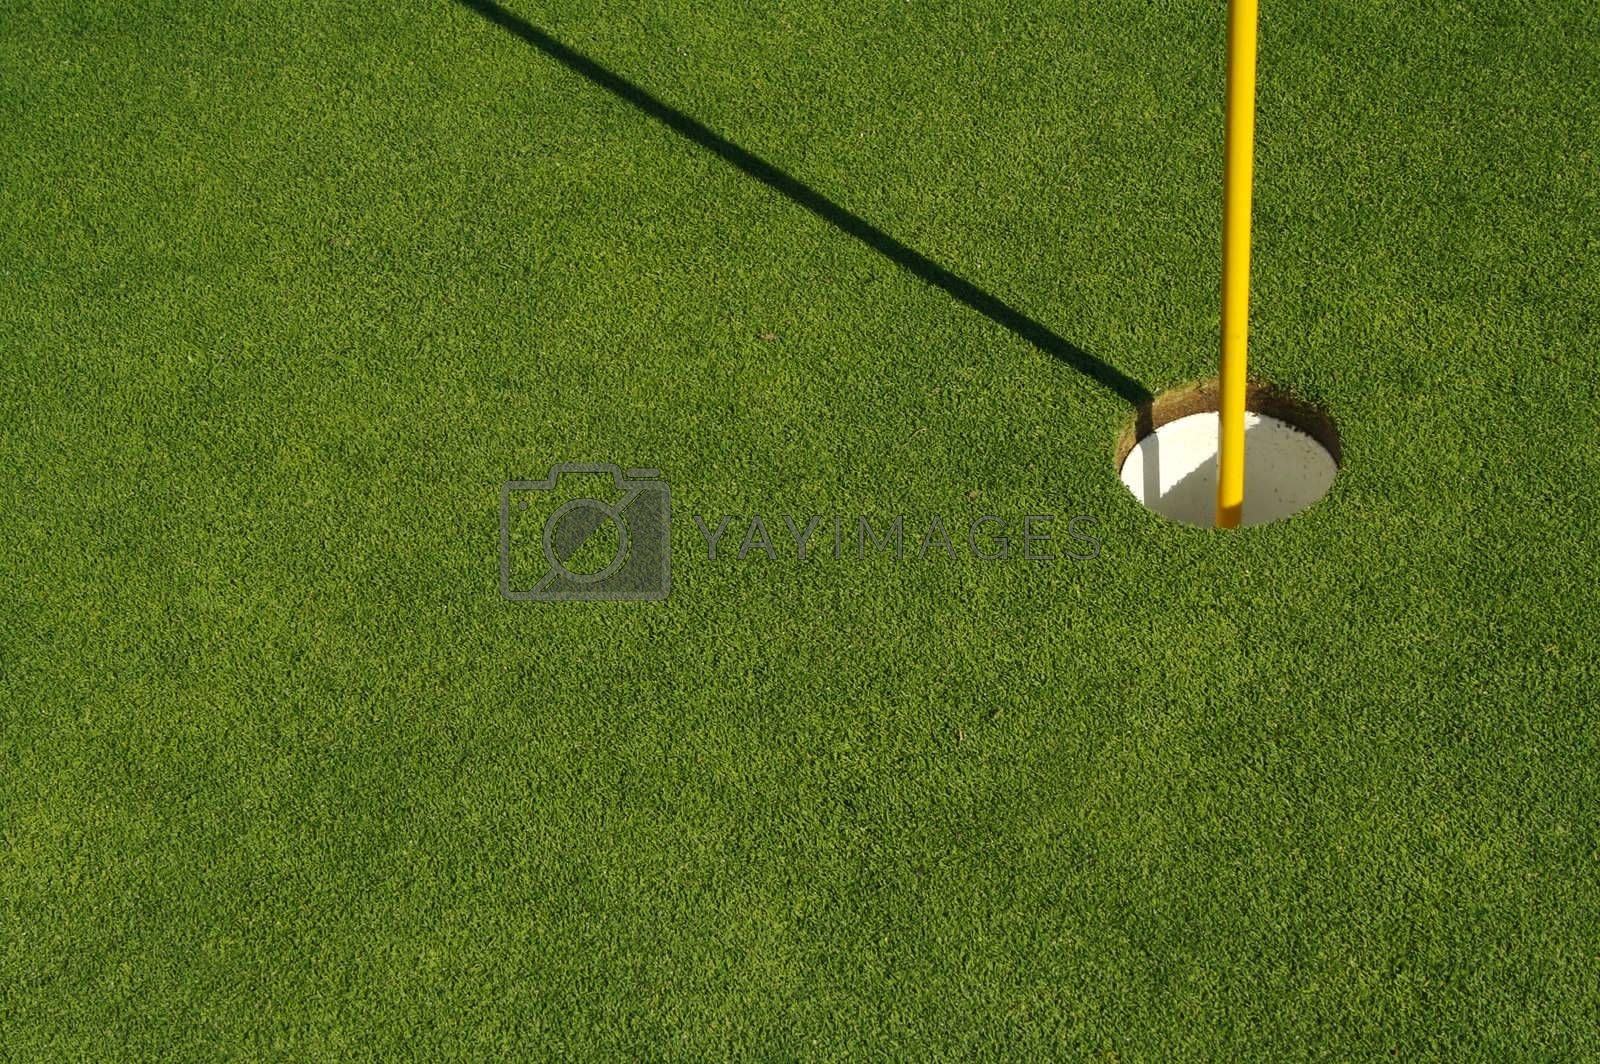 Lush, freshly mowed golf green, flag and cup with plenty of room for text on the left side.